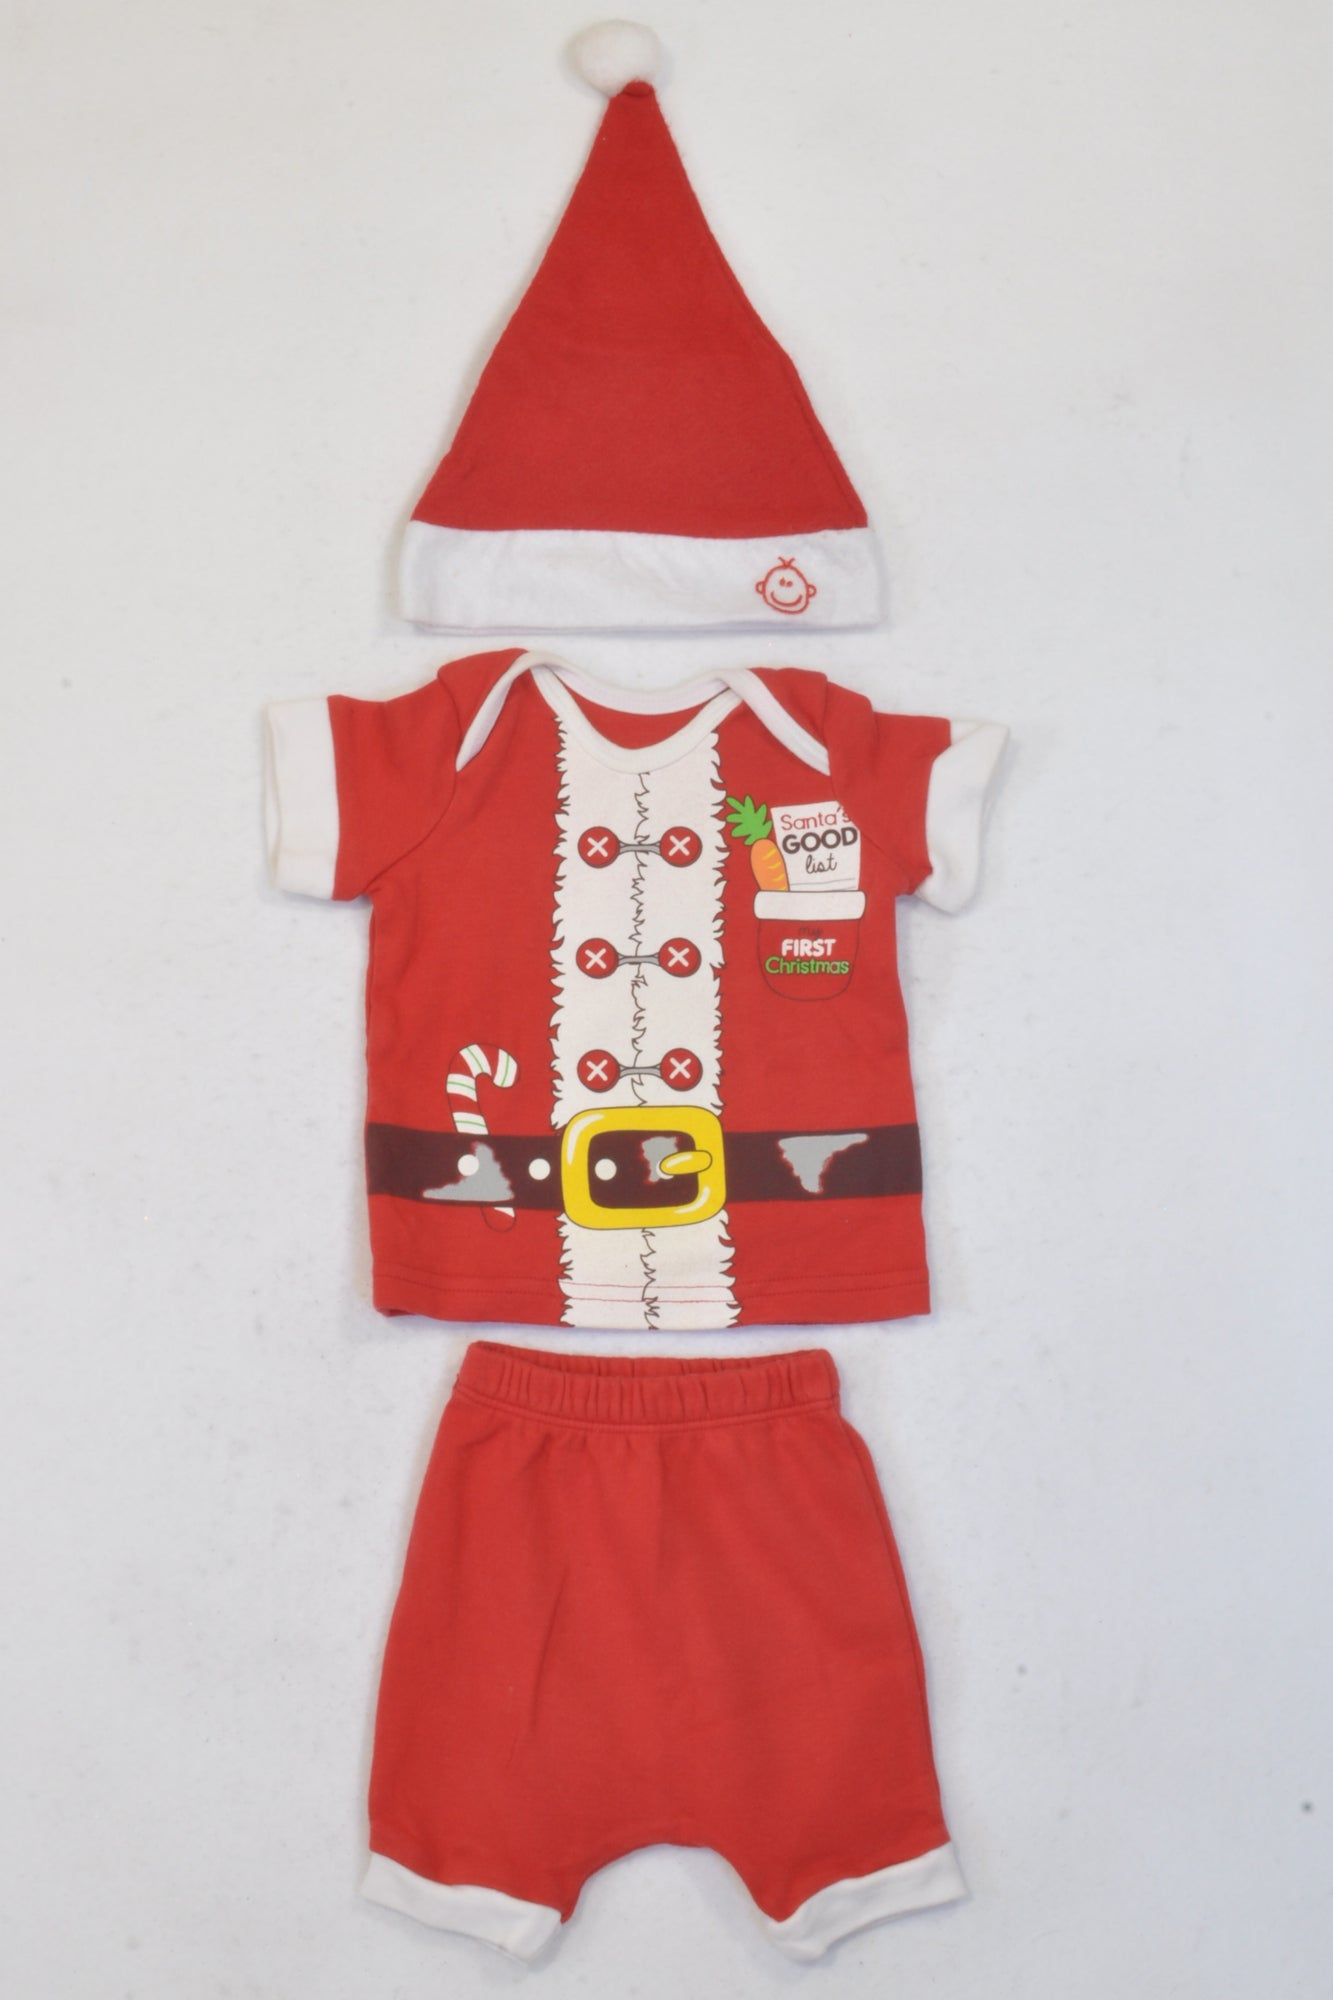 Christmas Outfit.Woolworths Red White My First Christmas Outfit Unisex 0 3 Months